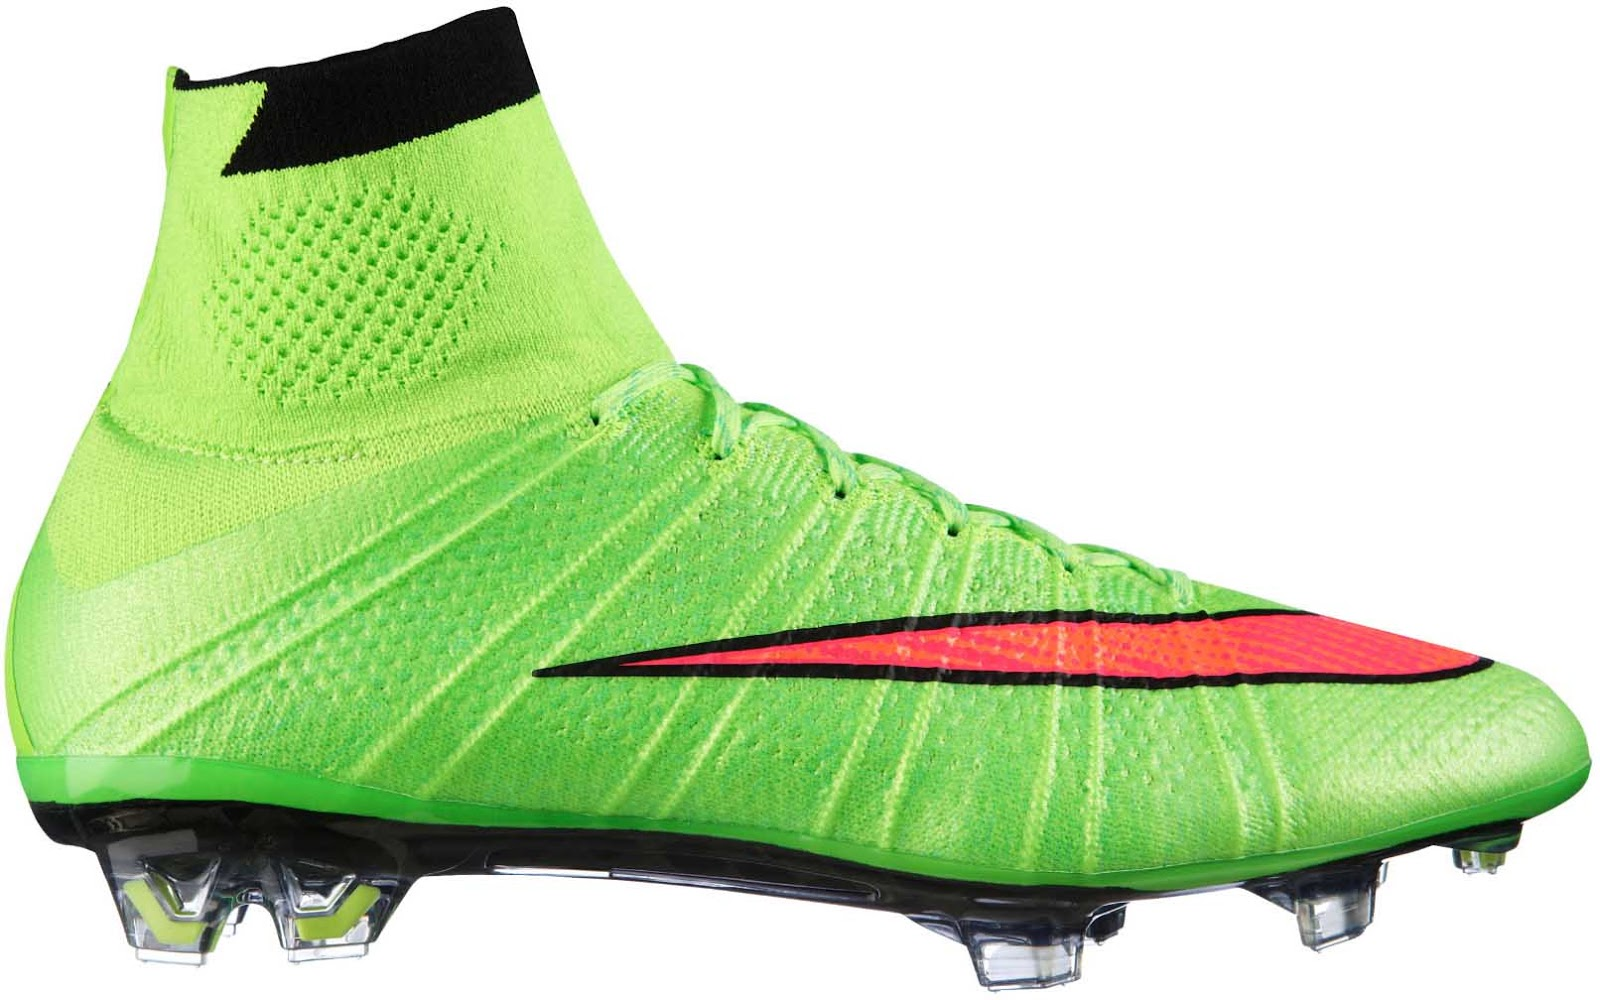 FlagWigs: Real Madrid C Ronaldo Nike Boot / Have a Fun ...